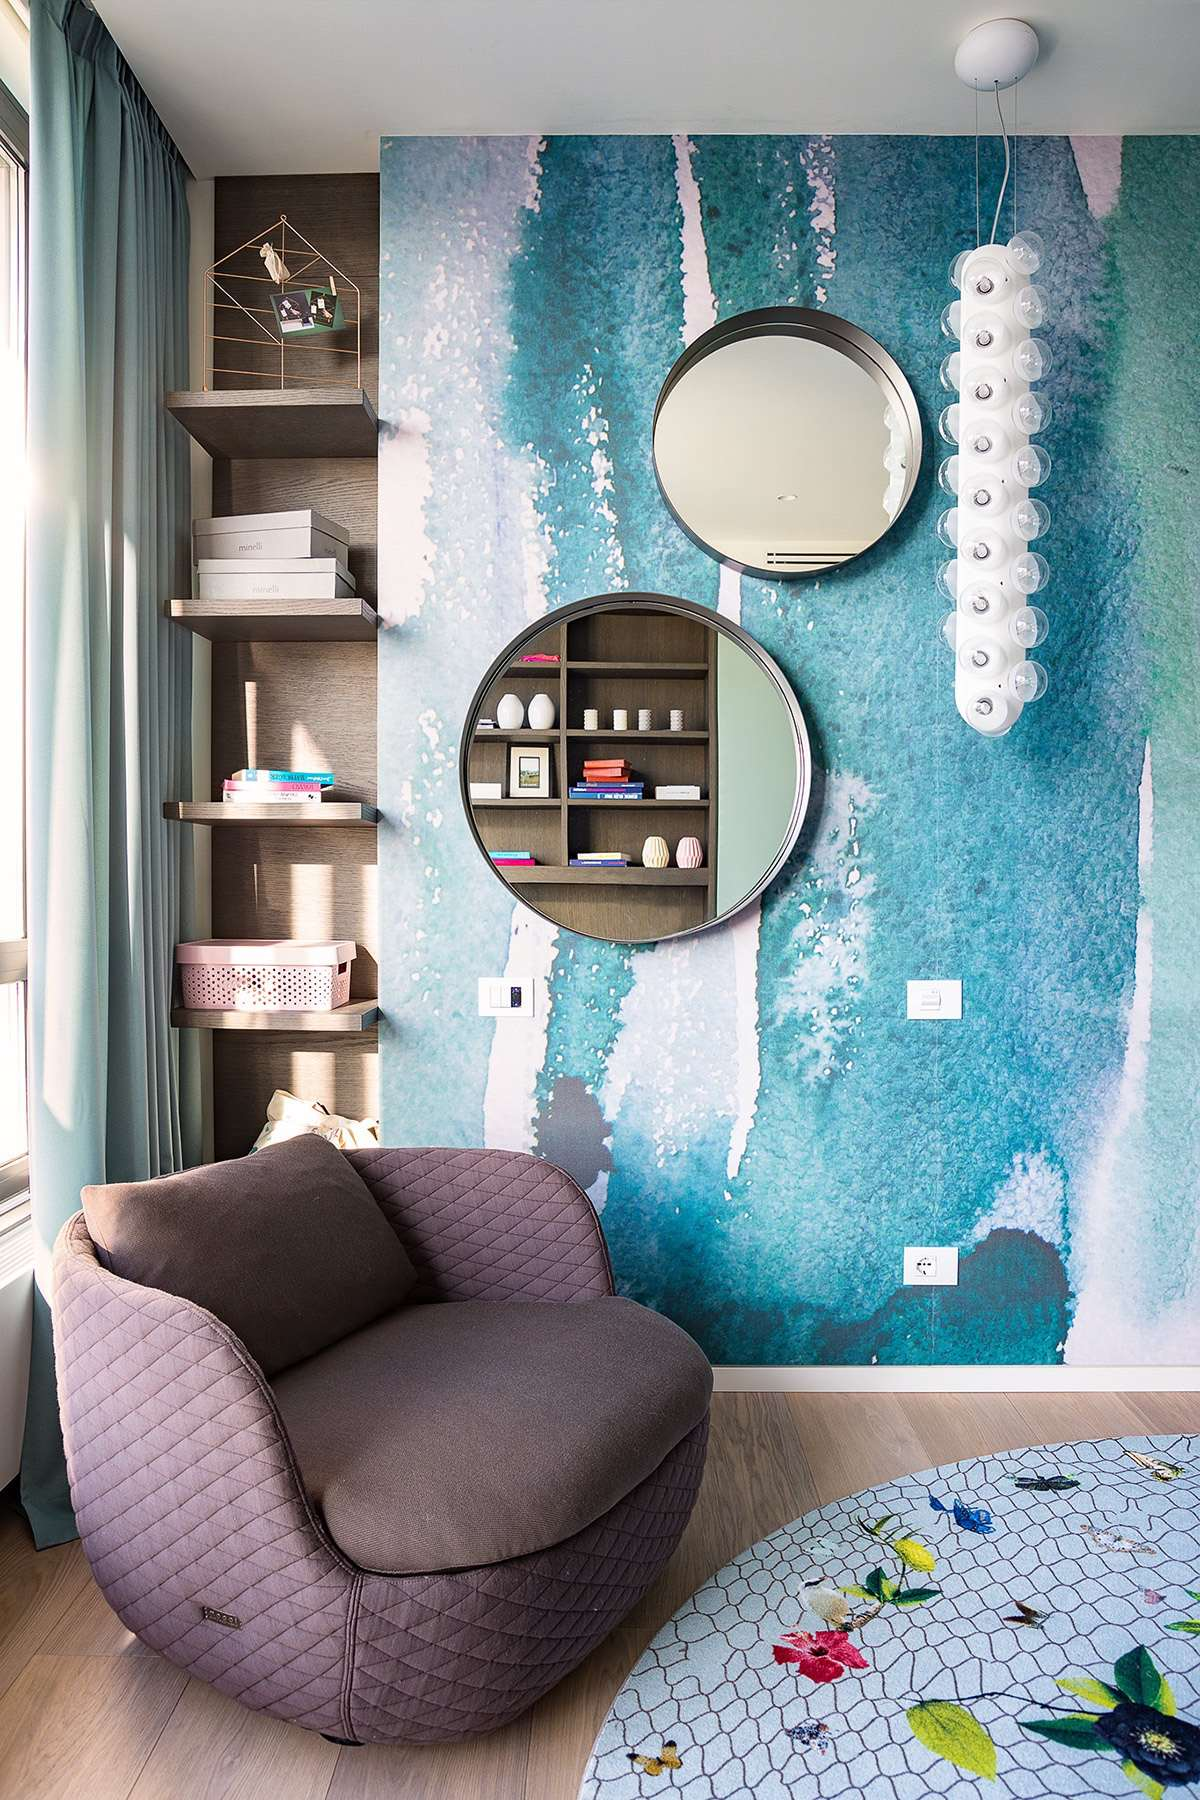 Whimsical Wall Round Mirrors - Modern perfection in kyiv apartment